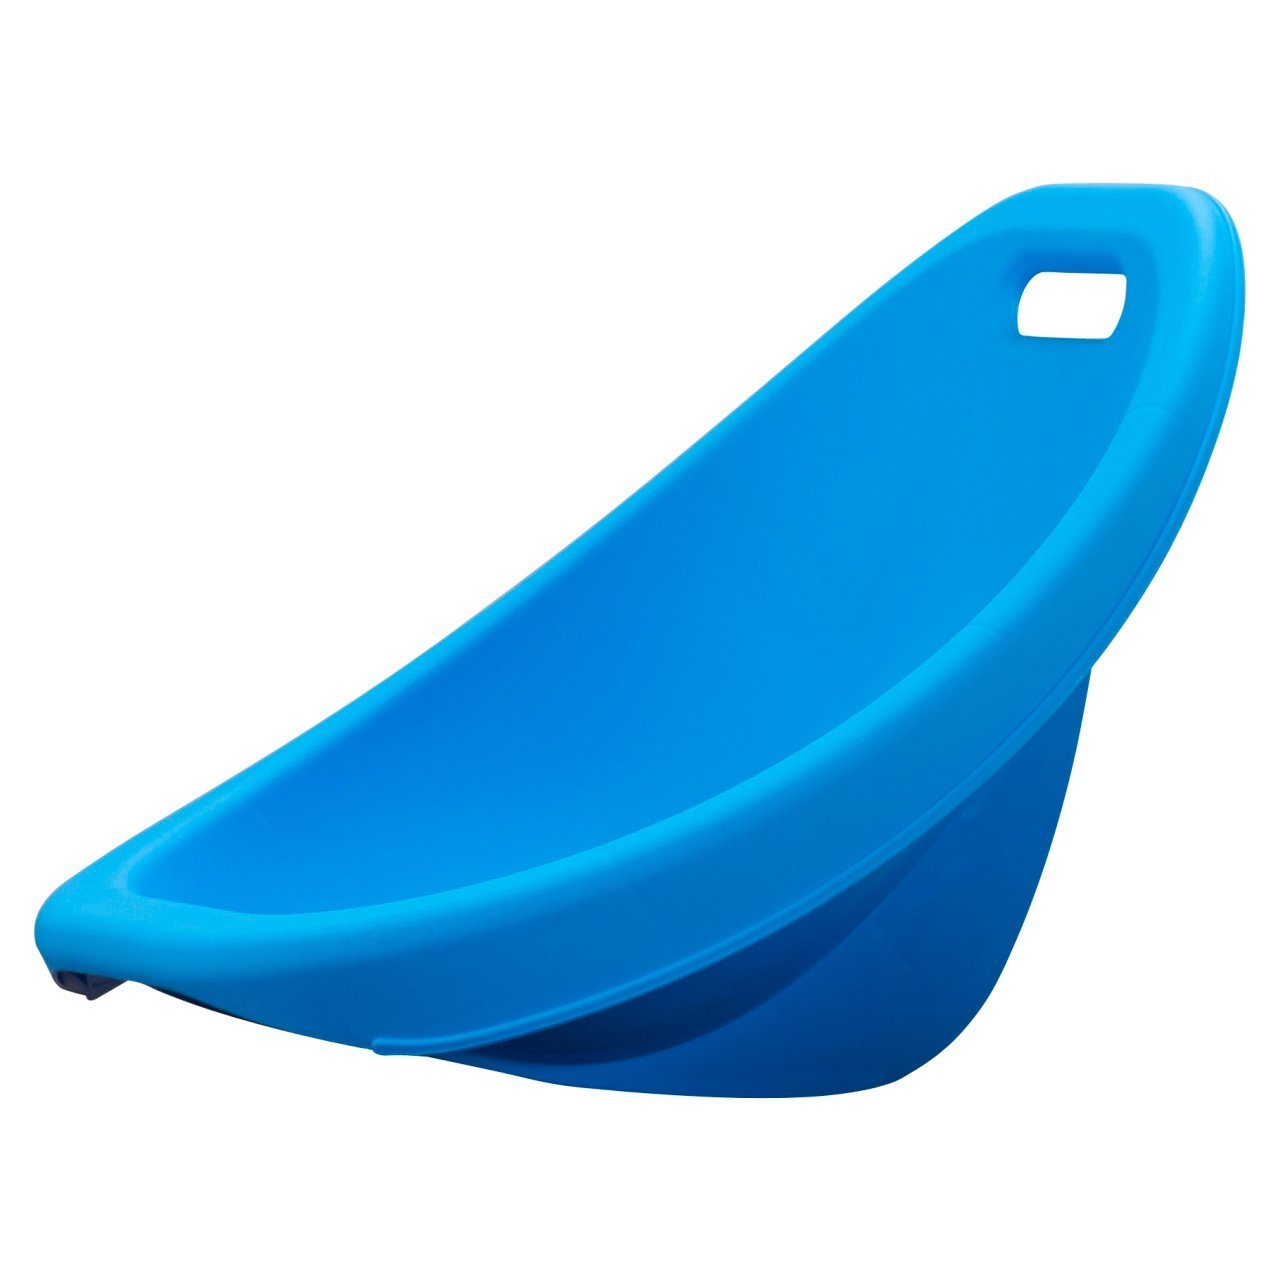 American Plastic Toys Scoop Rocker Chair (Pack of 6) Kids Childrens Chairs Includes Our Exclusive eBook